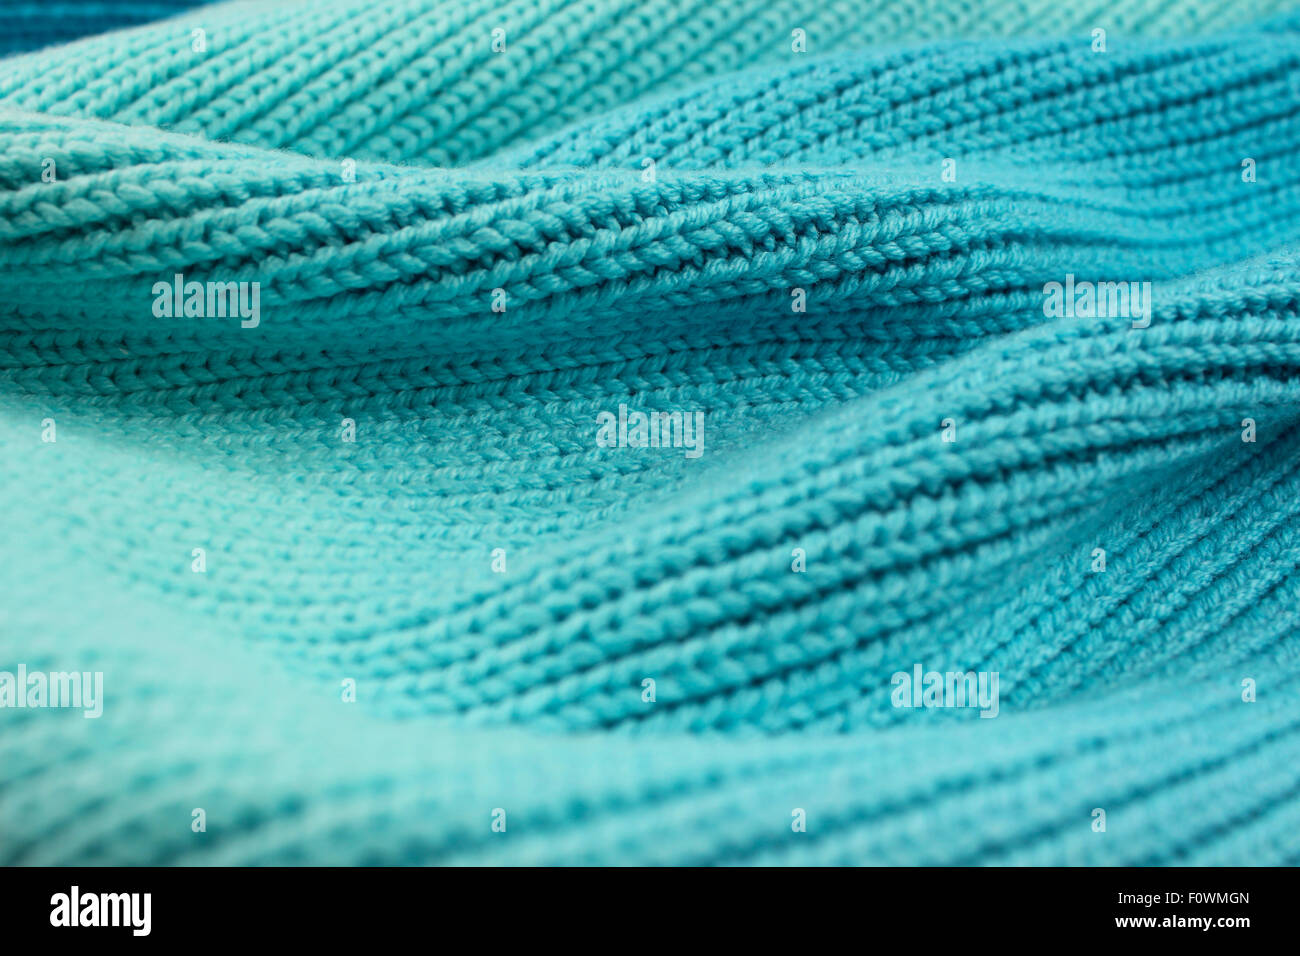 Knitted graduated turquoise shades of wool wave effect background - Stock Image